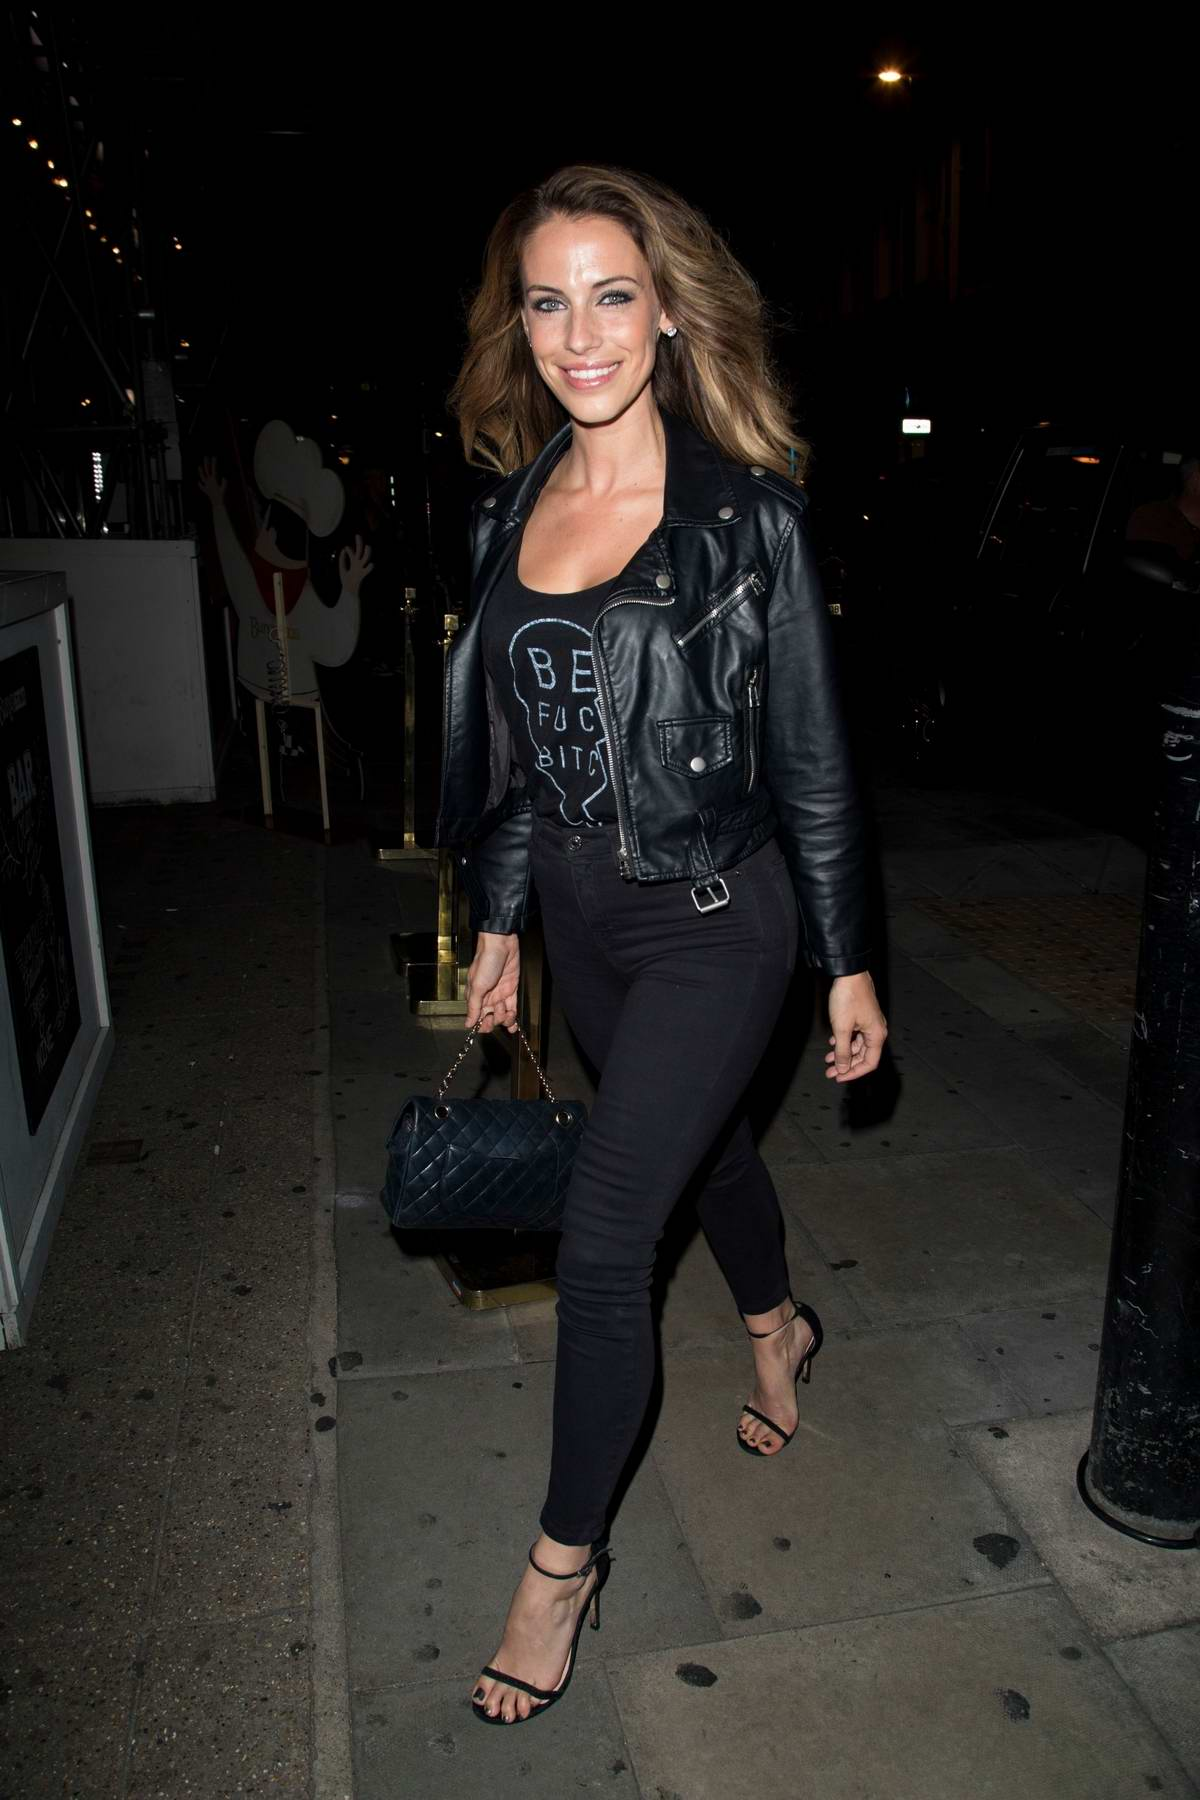 Jessica lowndes arriving at bunga bunga in covent garden in london